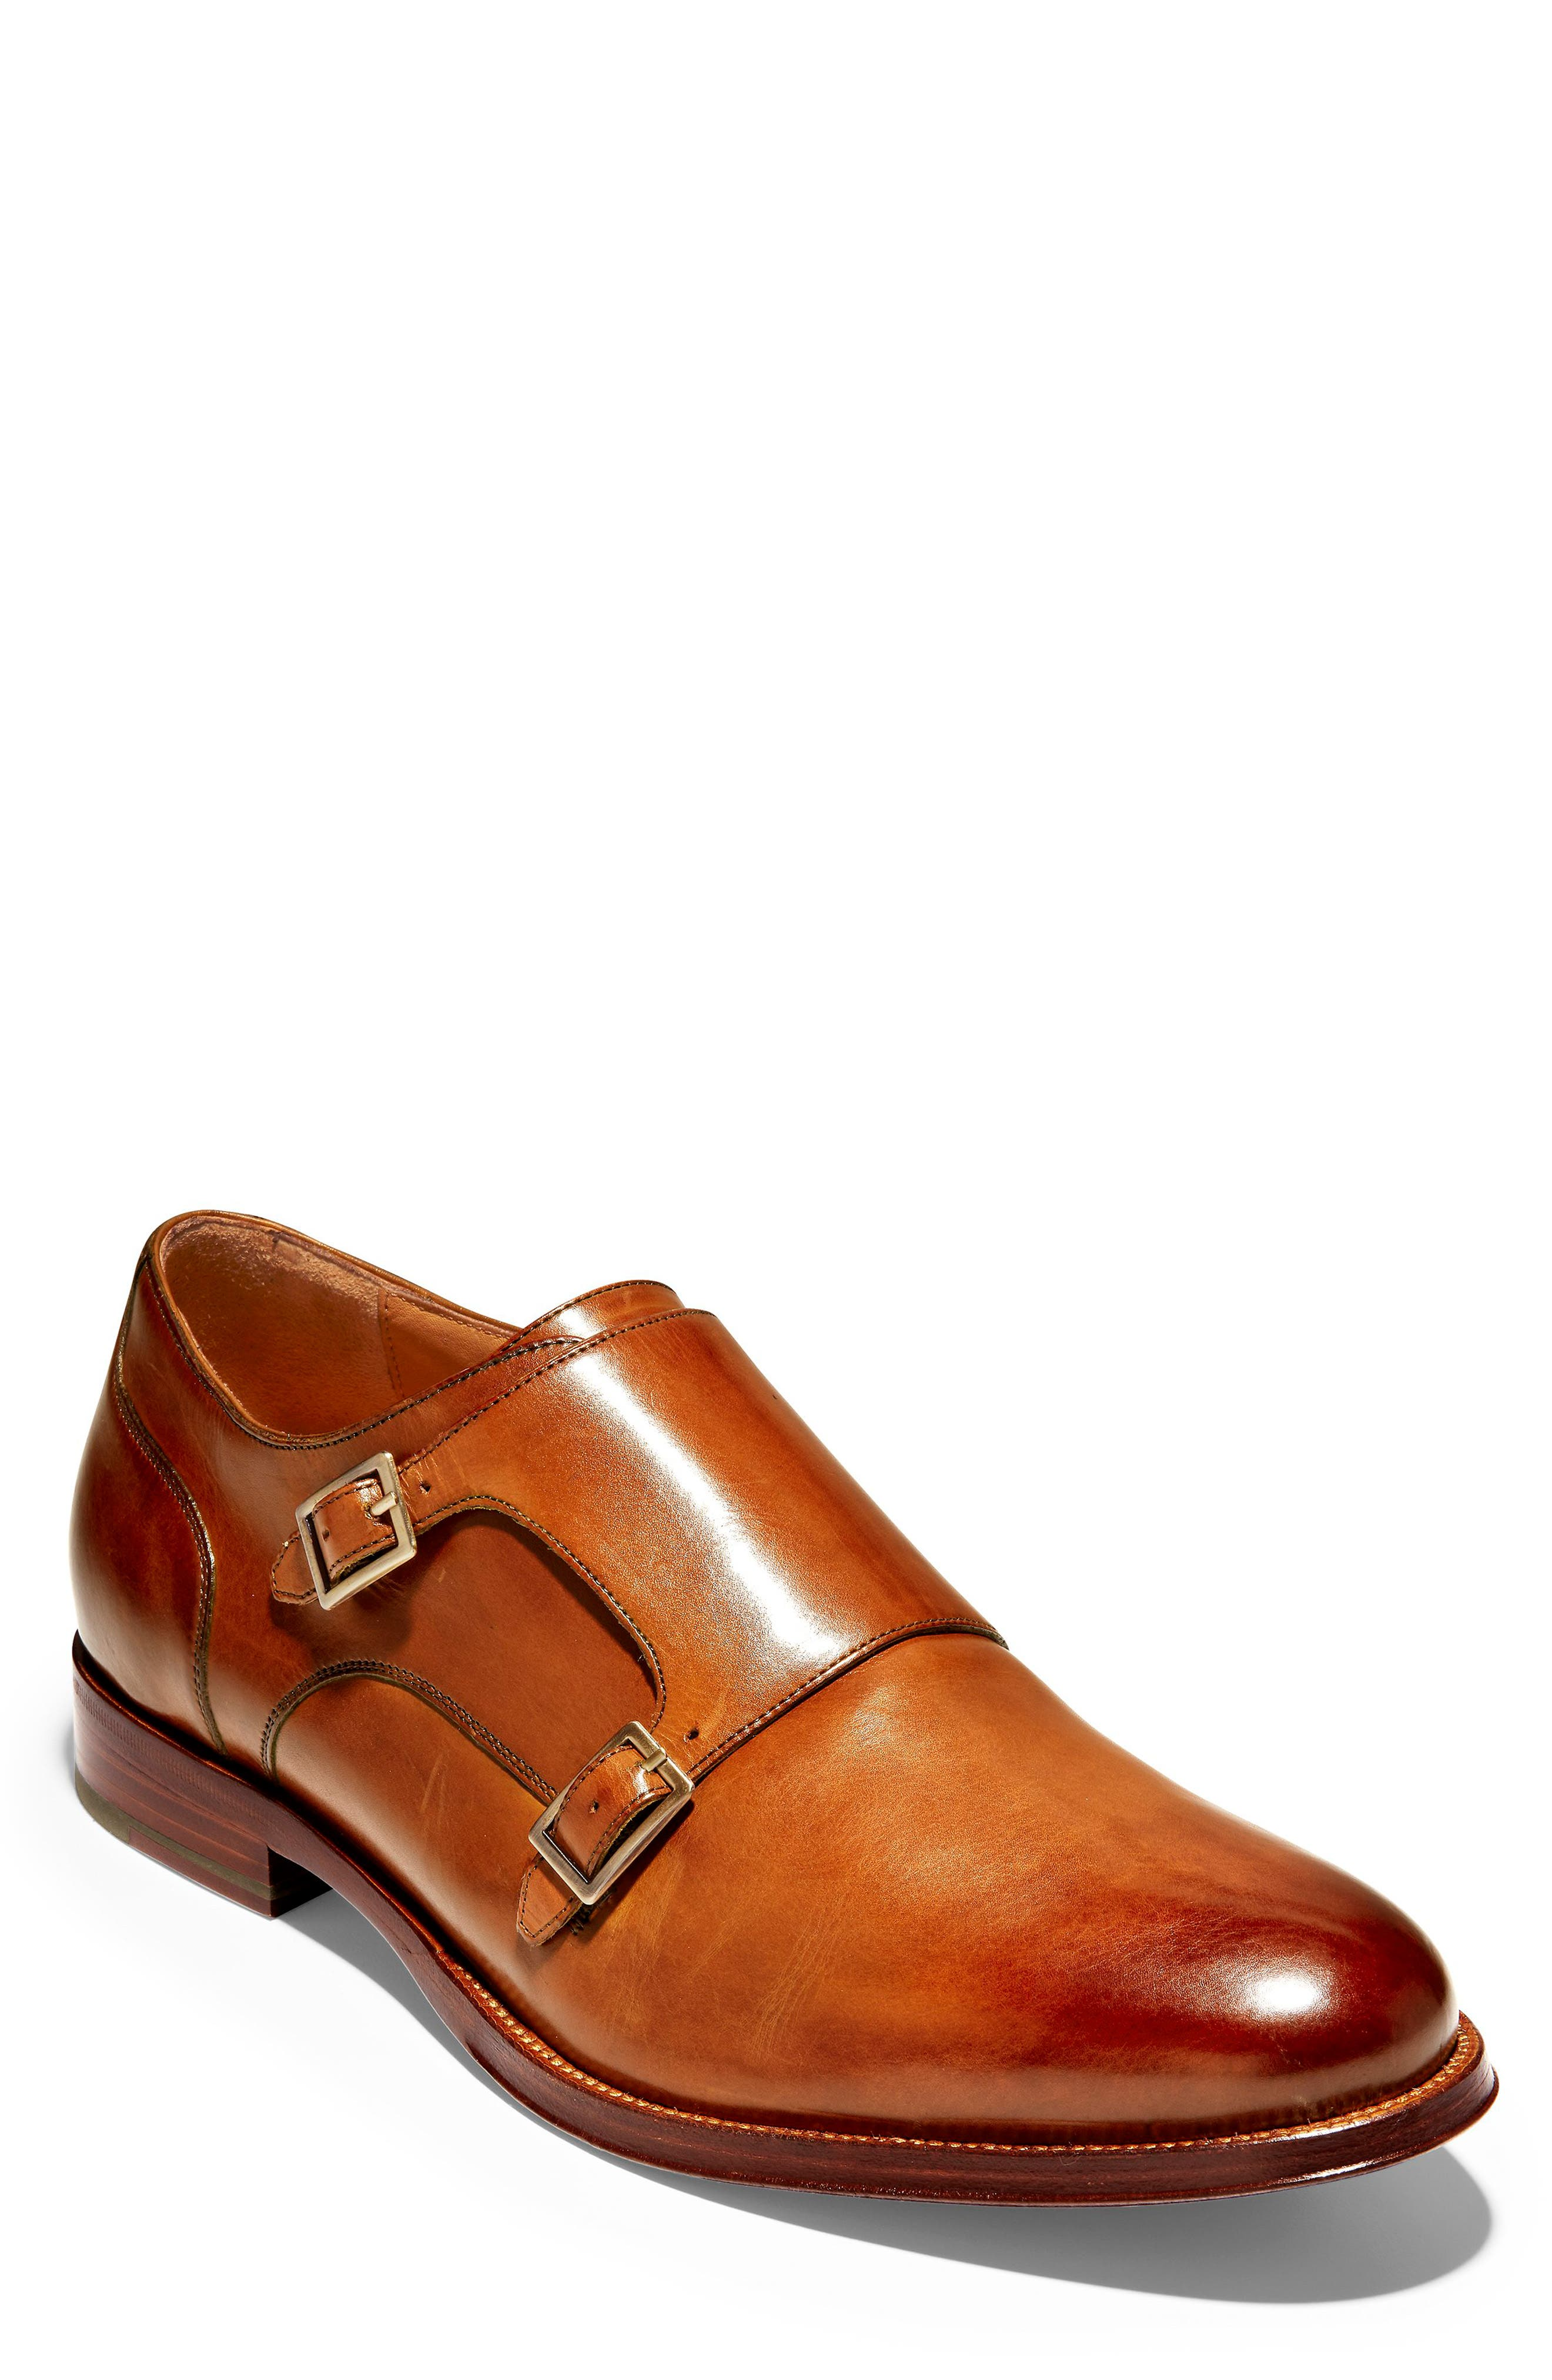 COLE HAAN, American Classics Gramercy Double Strap Monk Shoe, Main thumbnail 1, color, BRITISH TAN LEATHER